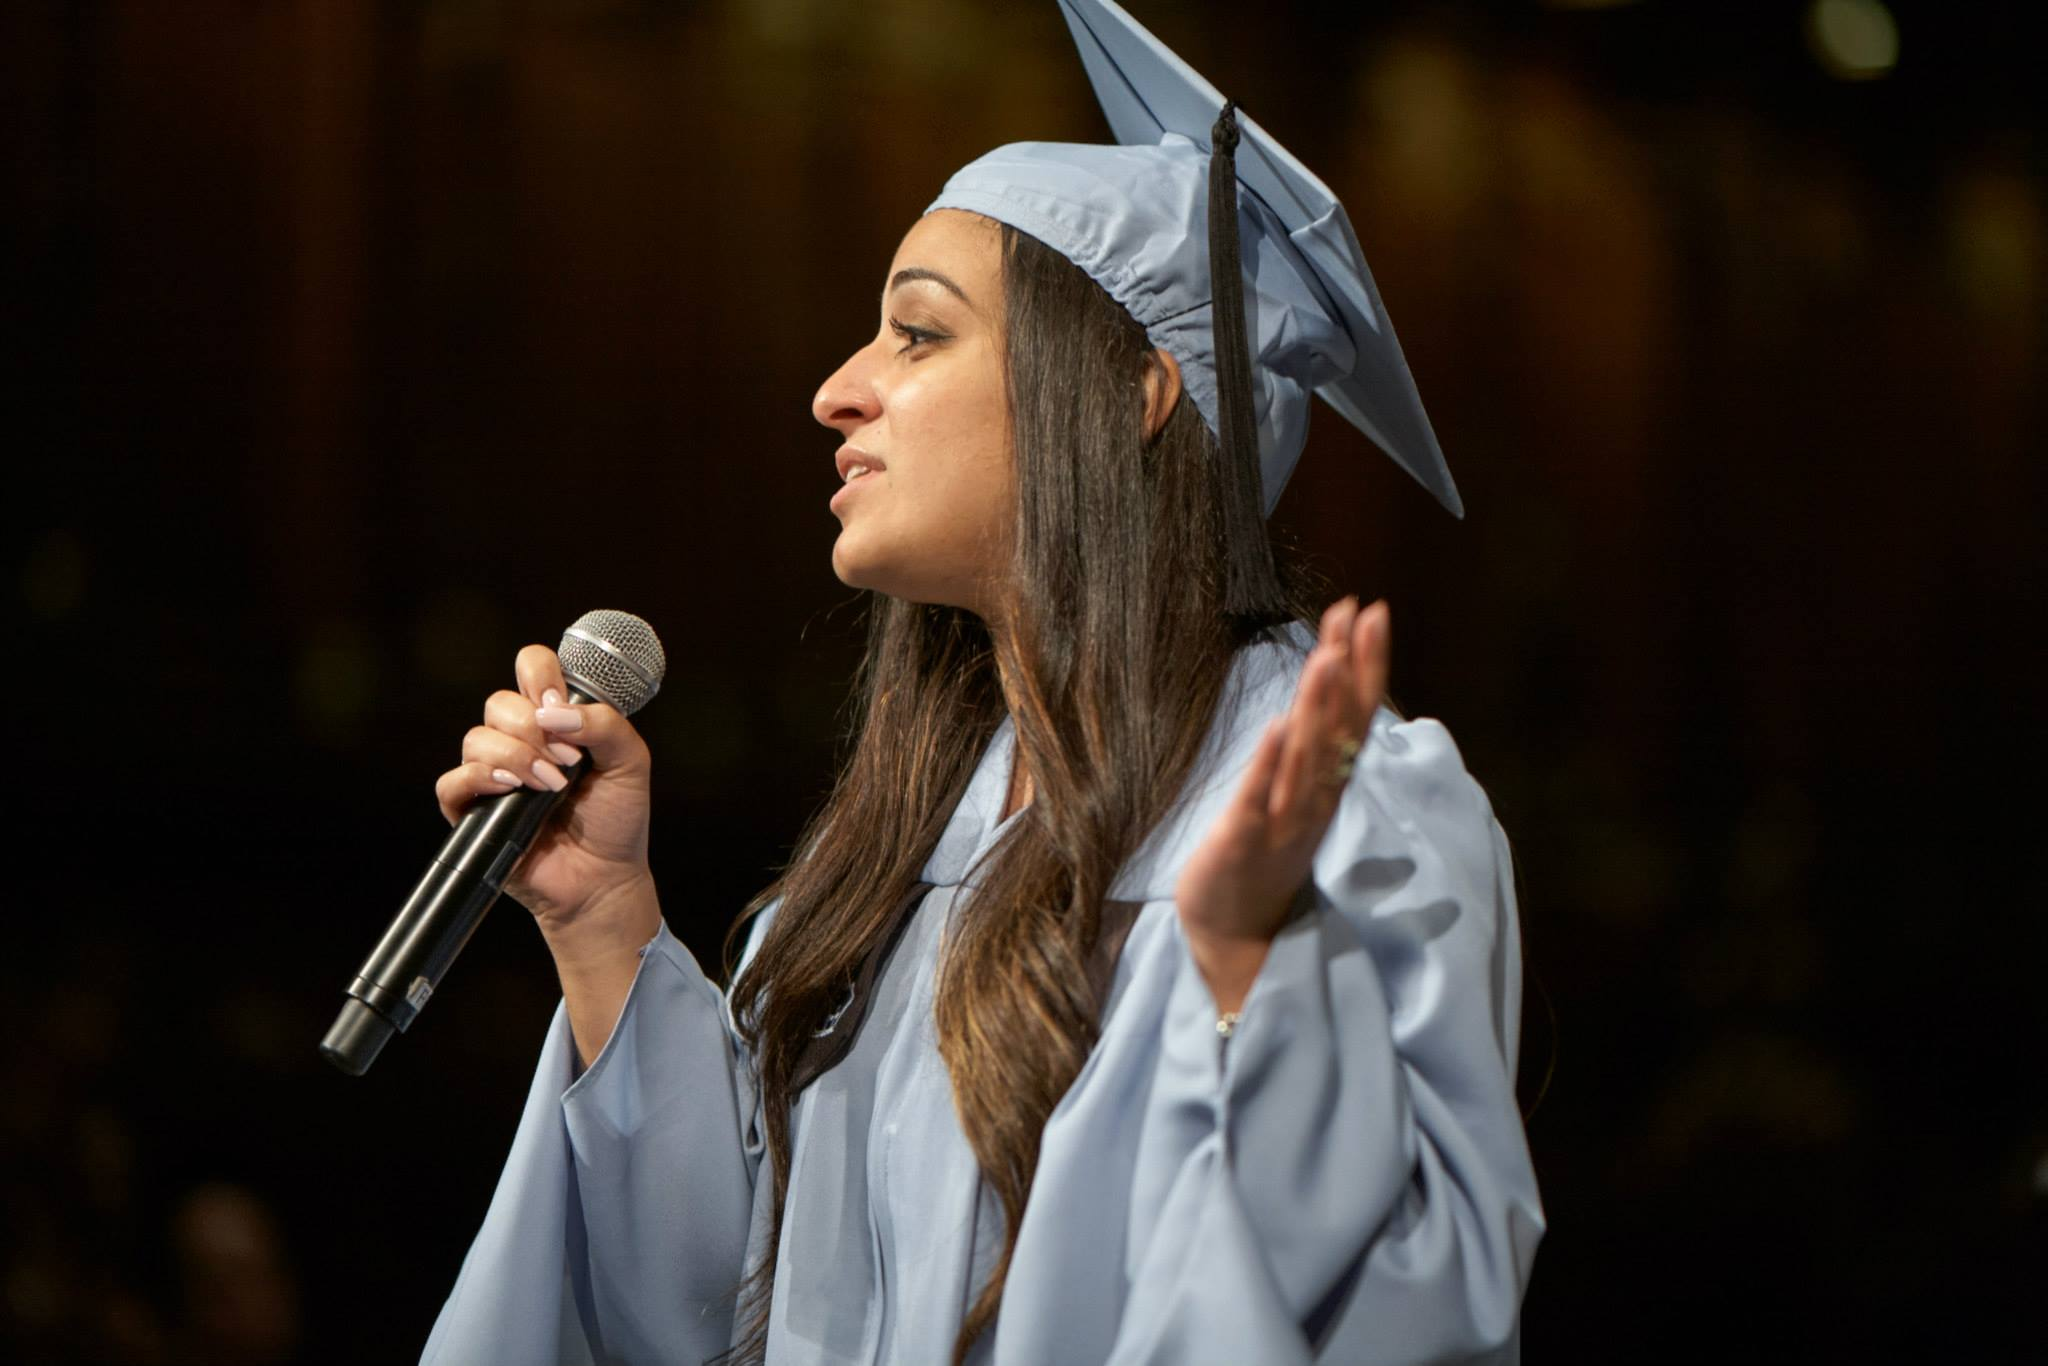 Francani performed twice during TC's 2015 Convocation ceremonies, regaling the audience with her own performance and also stepping in when another act canceled.